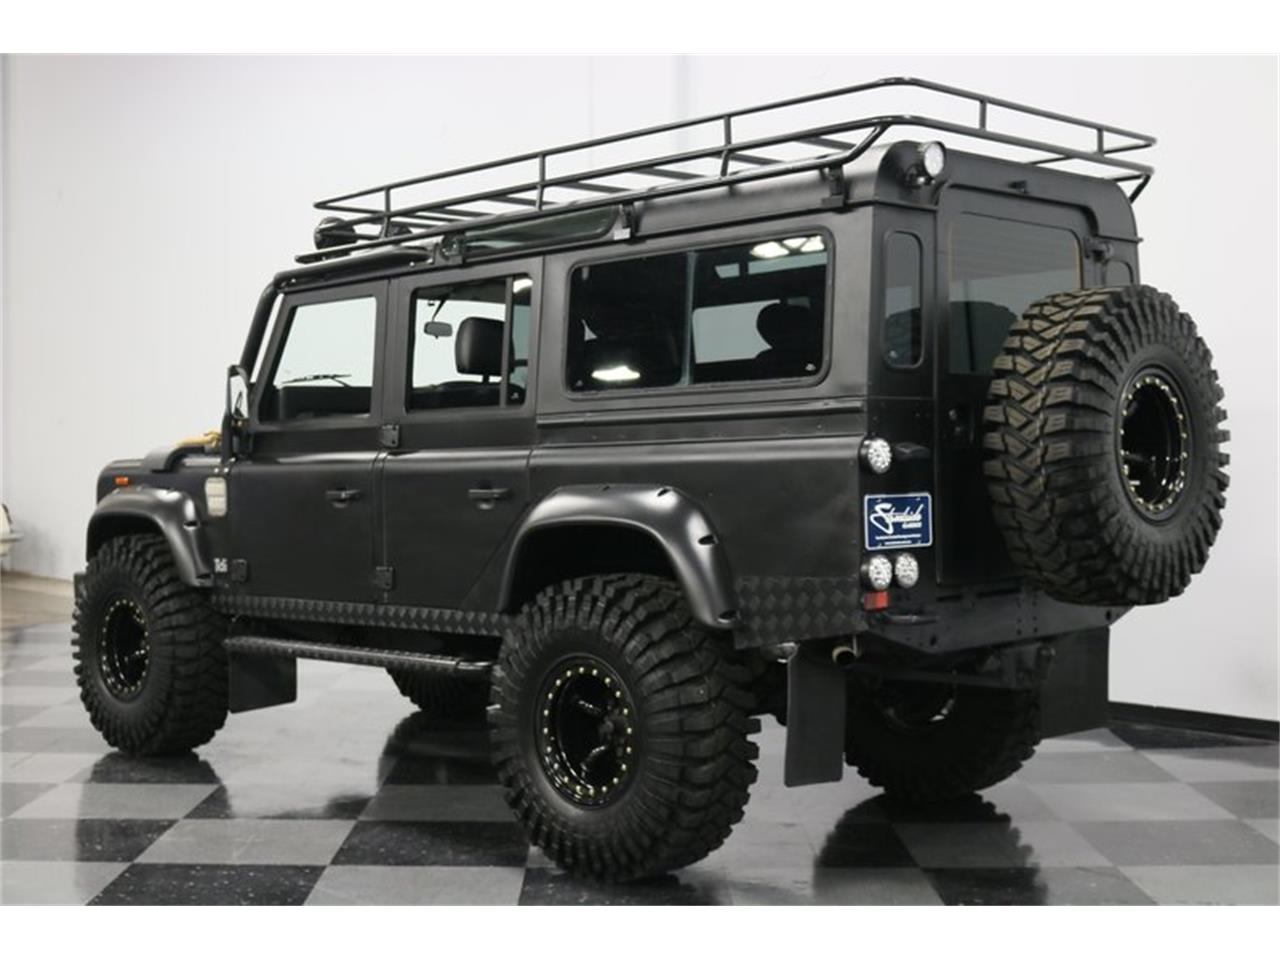 Large Picture of '91 Land Rover Defender located in Texas Offered by Streetside Classics - Dallas / Fort Worth - PD5S